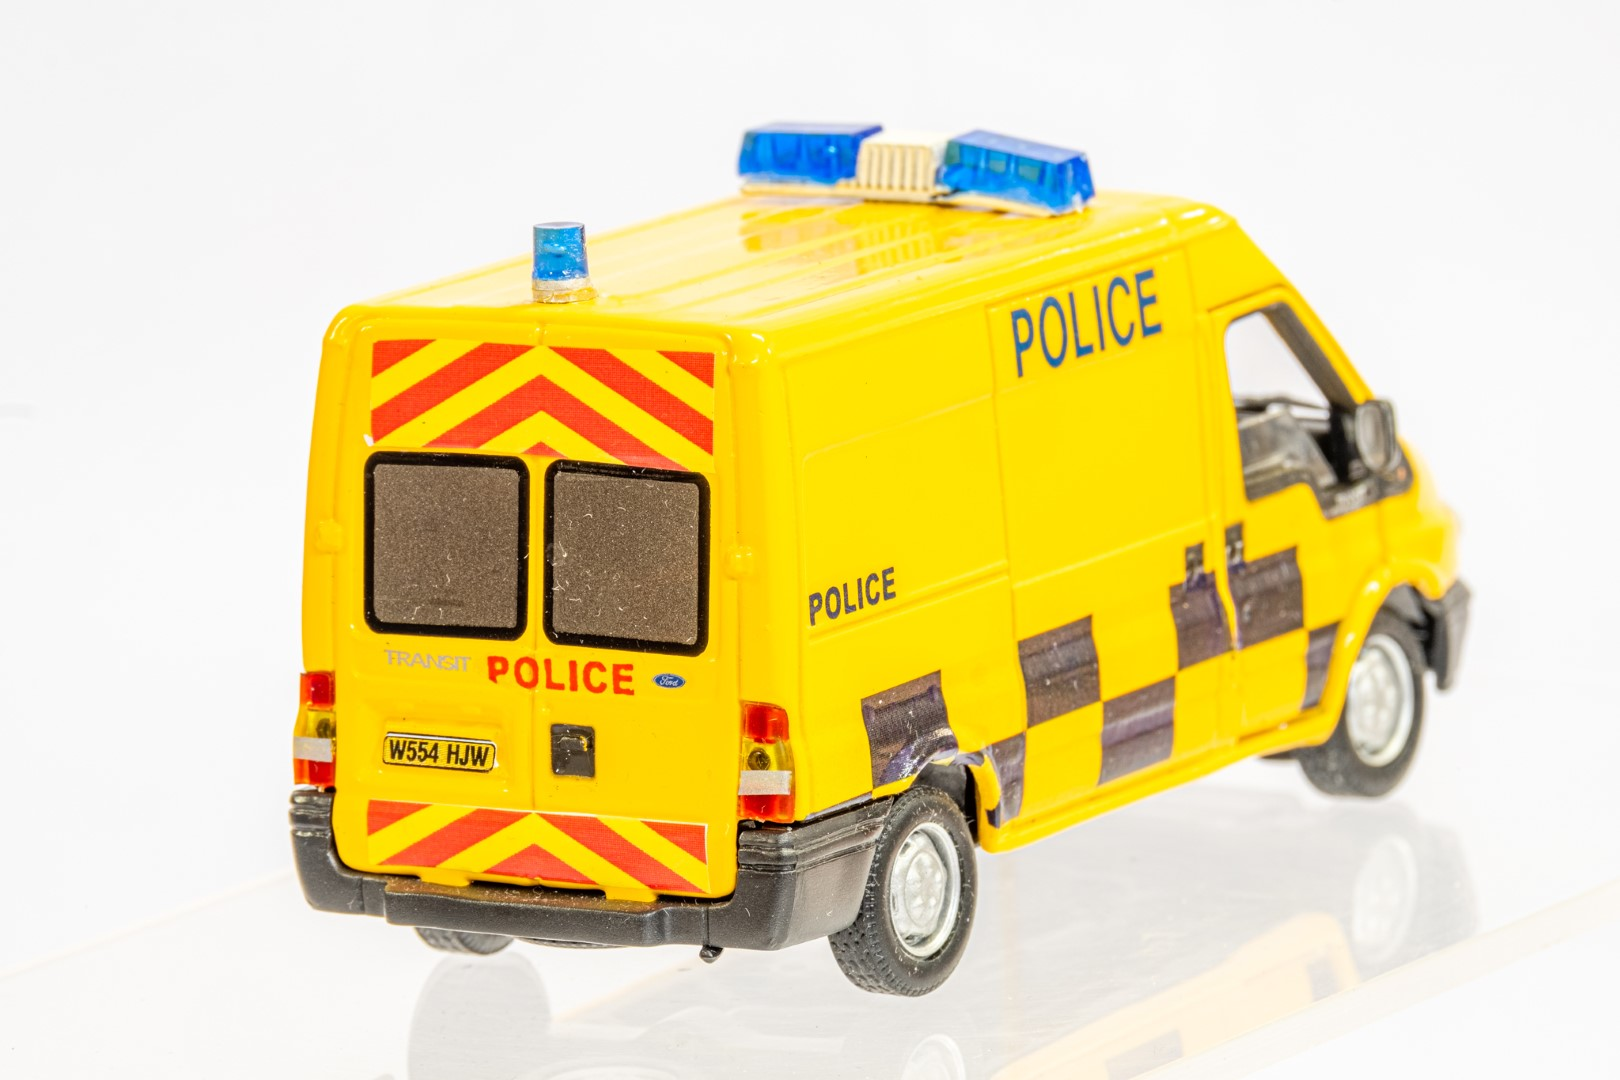 Richmon Toys Ford Transit Police Van - The Bill - Image 6 of 7